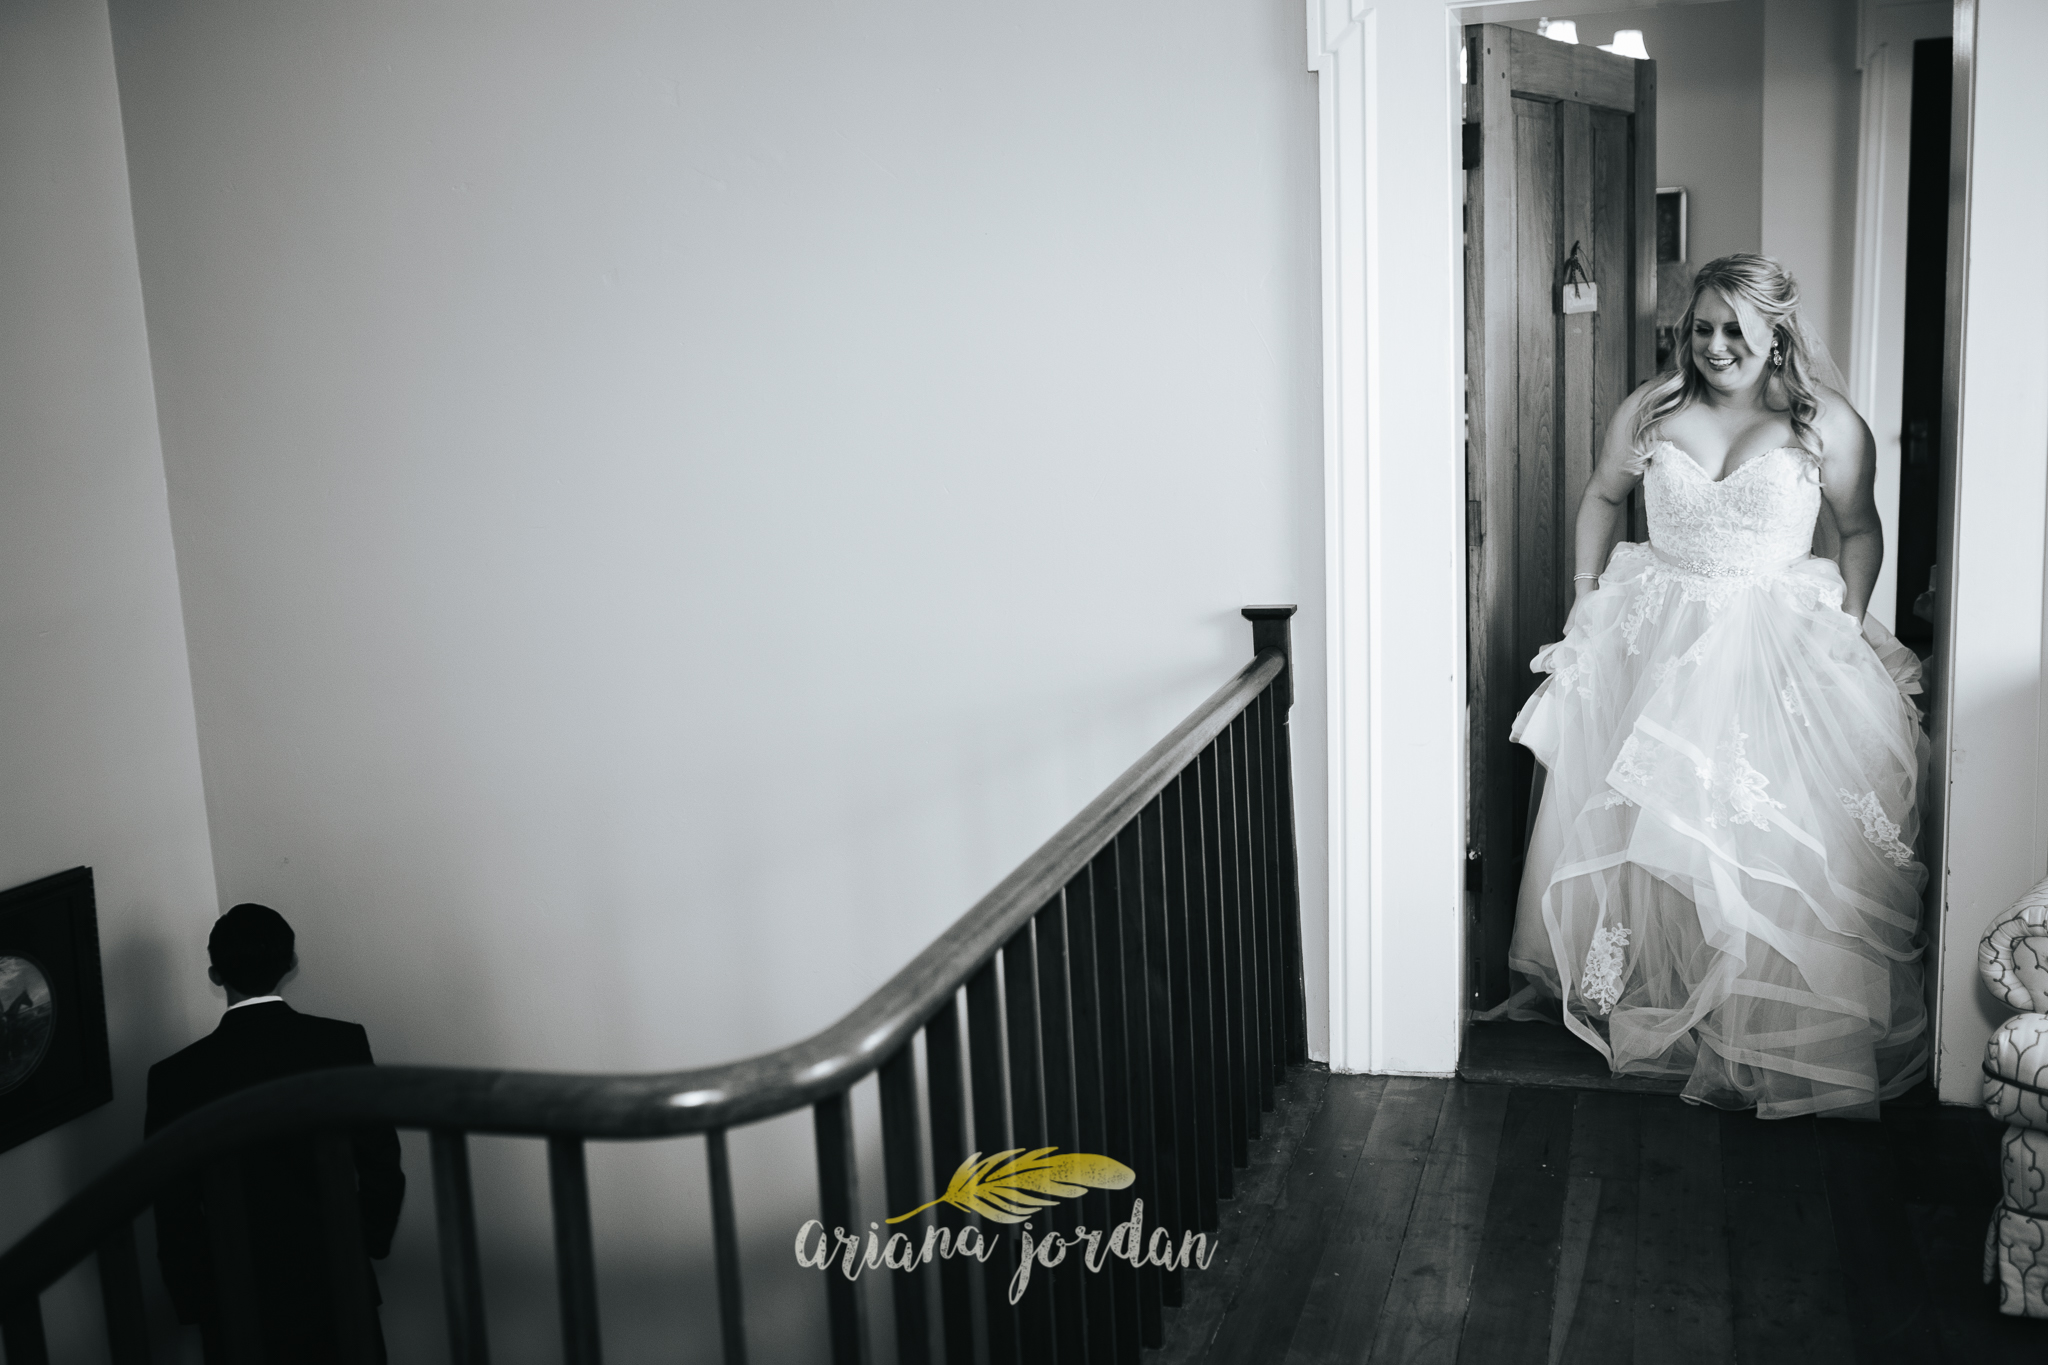 040 Ariana Jordan Photography - Ashley Inn Wedding Photographer 9616.jpg